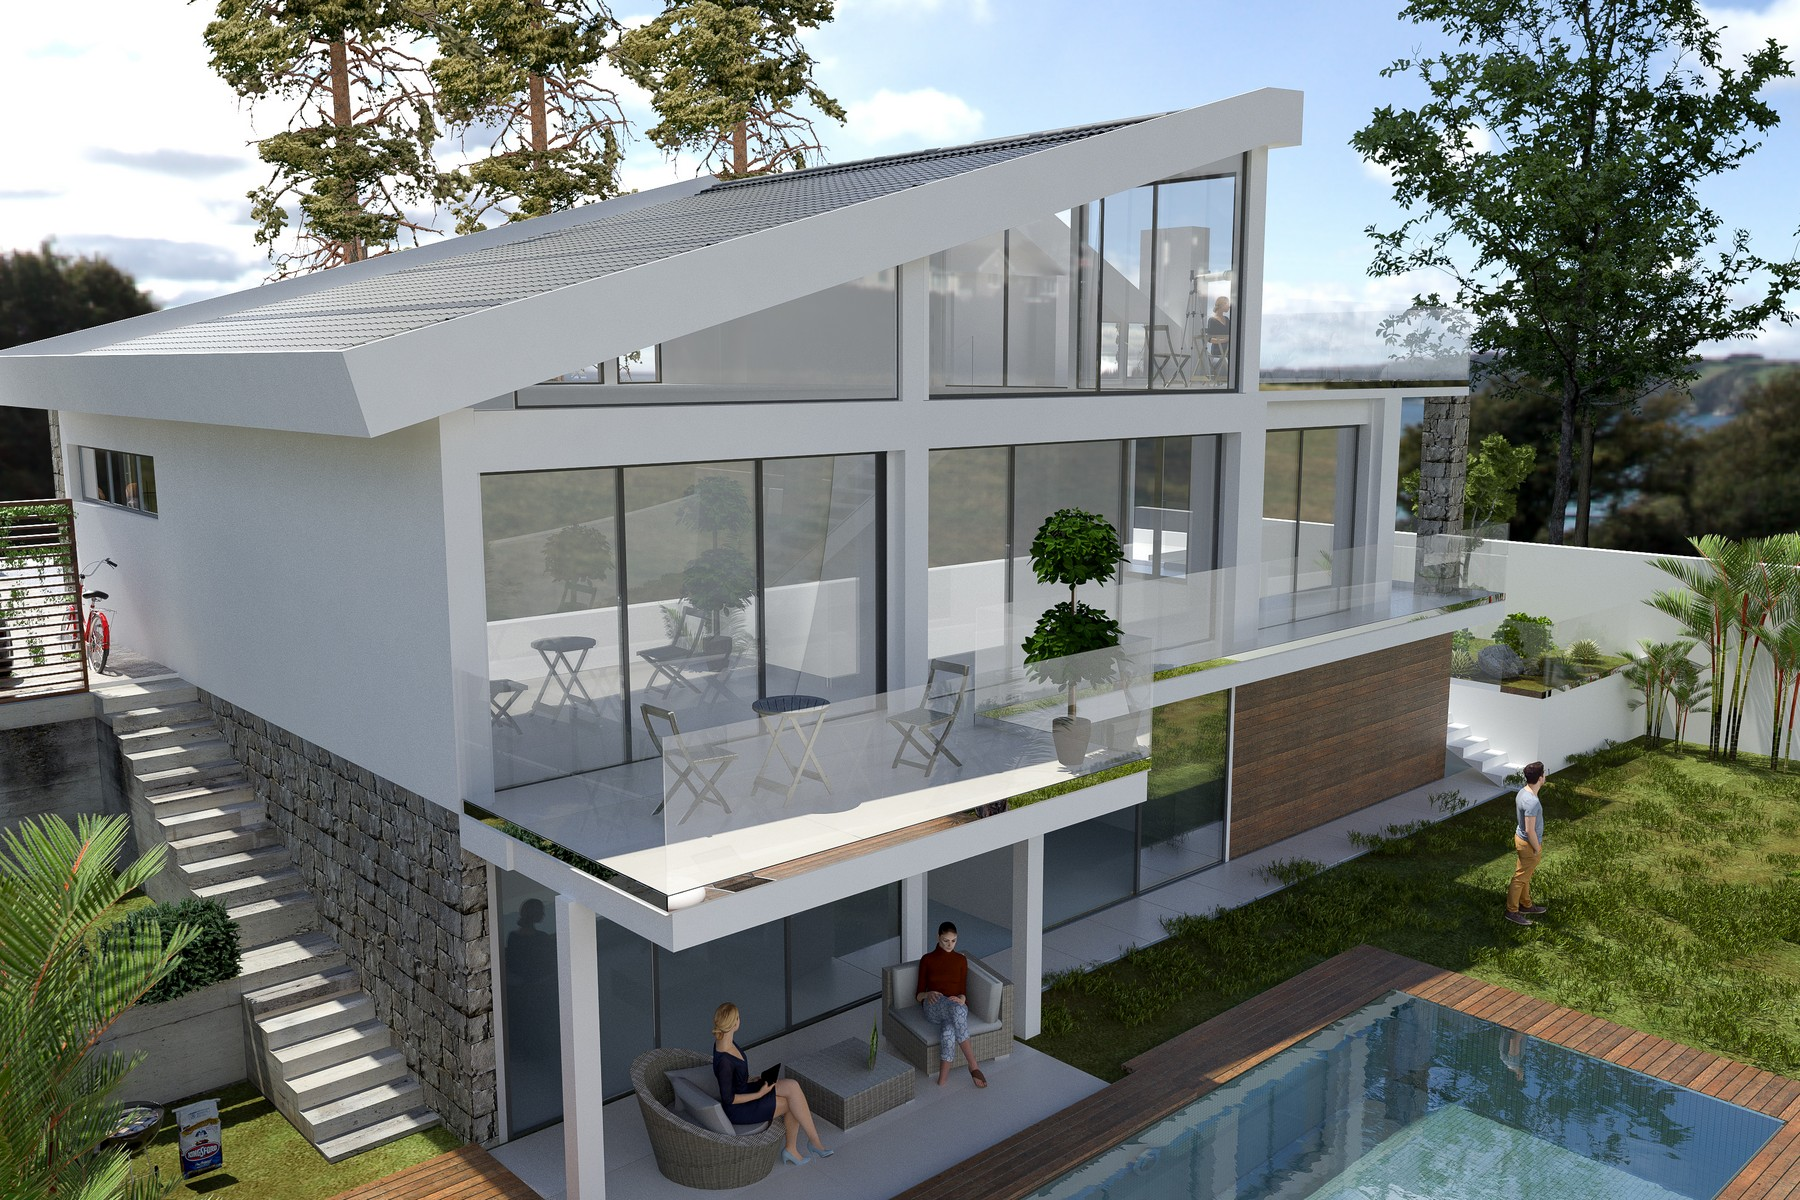 Single Family Home for Sale at Luxury villa in the exclusive area of Old Bendinat Calvia, Mallorca, 07181 Spain